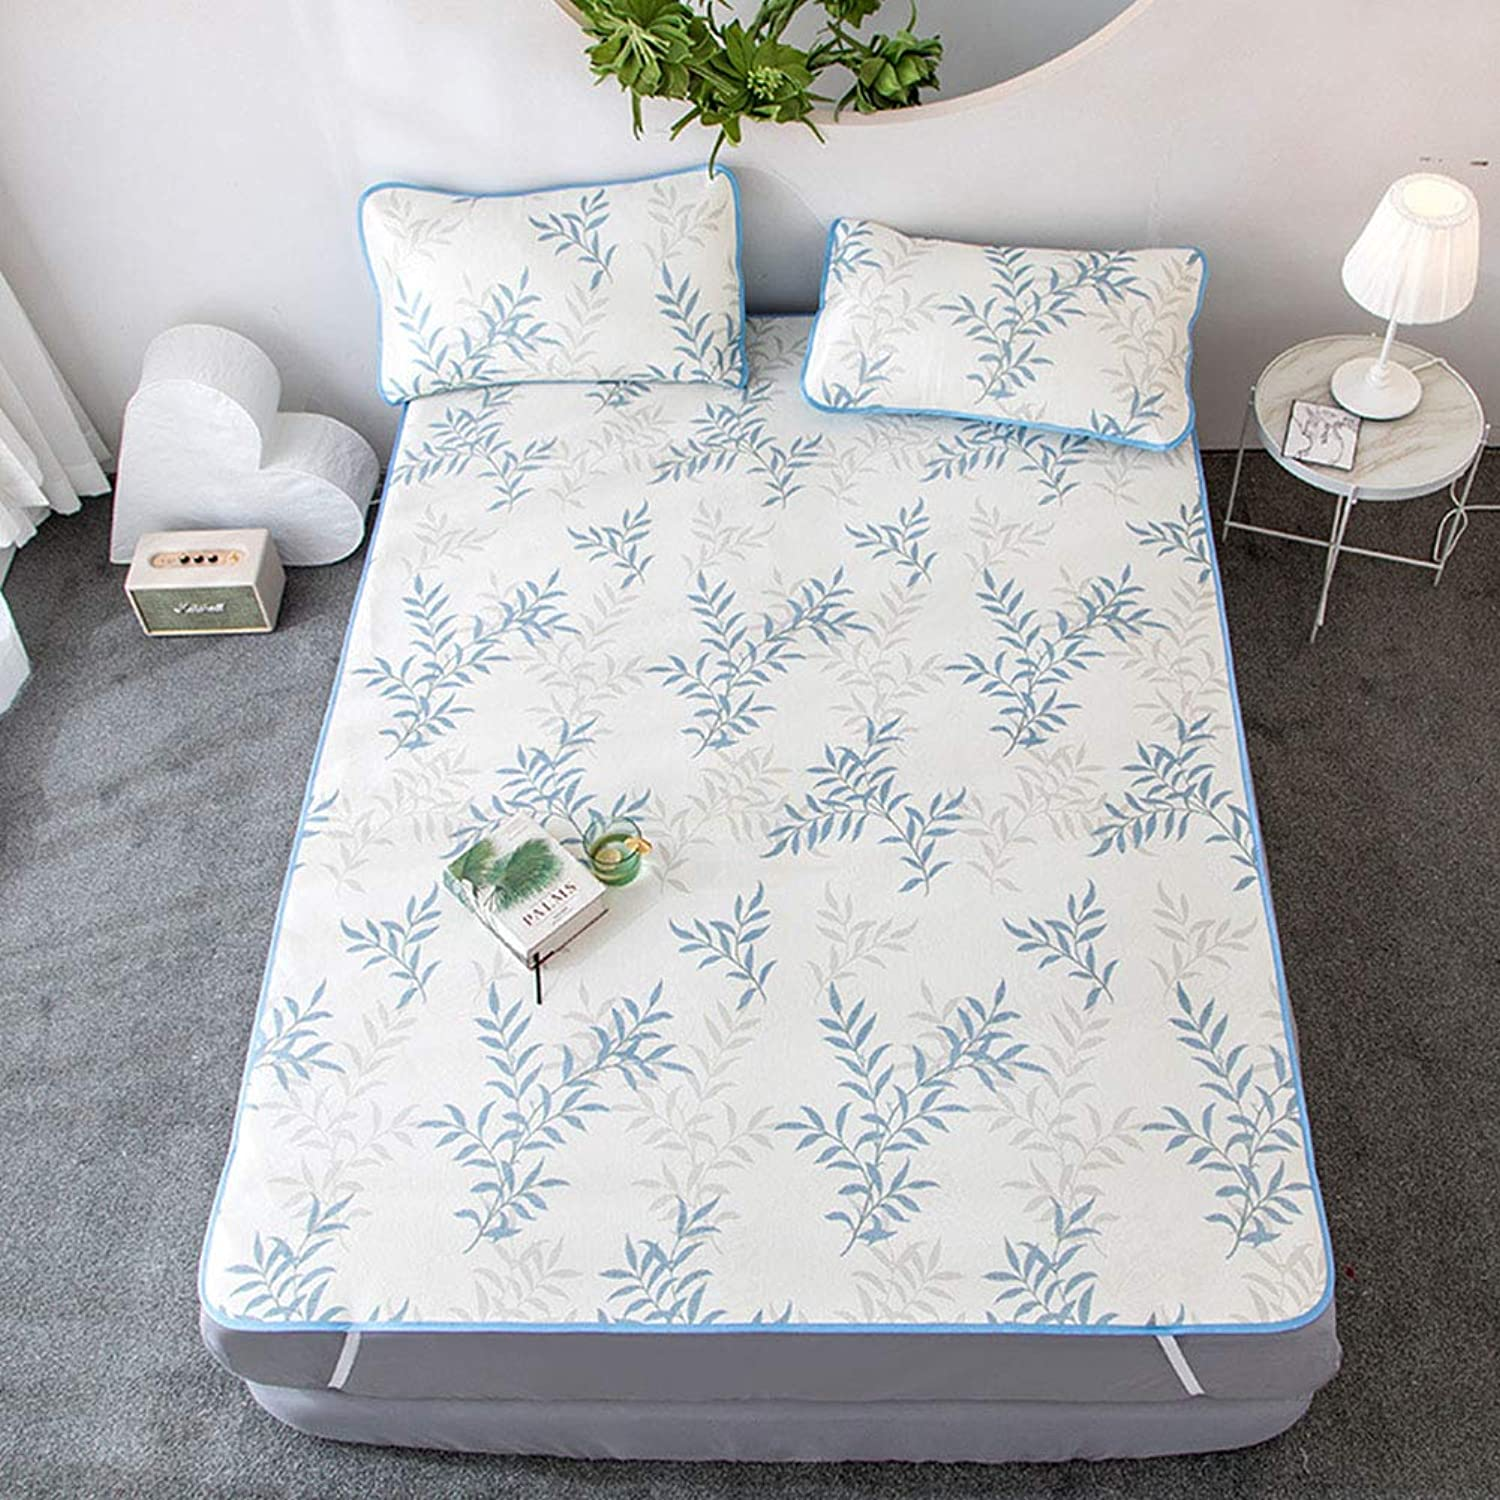 Summer Mattress, Three-Piece Set, Printed Ice Silk Mat, Summer Cool Foldable Washable Sleeping Mat, Suitable for Home, Dormitory, Gift A 1.8X2m